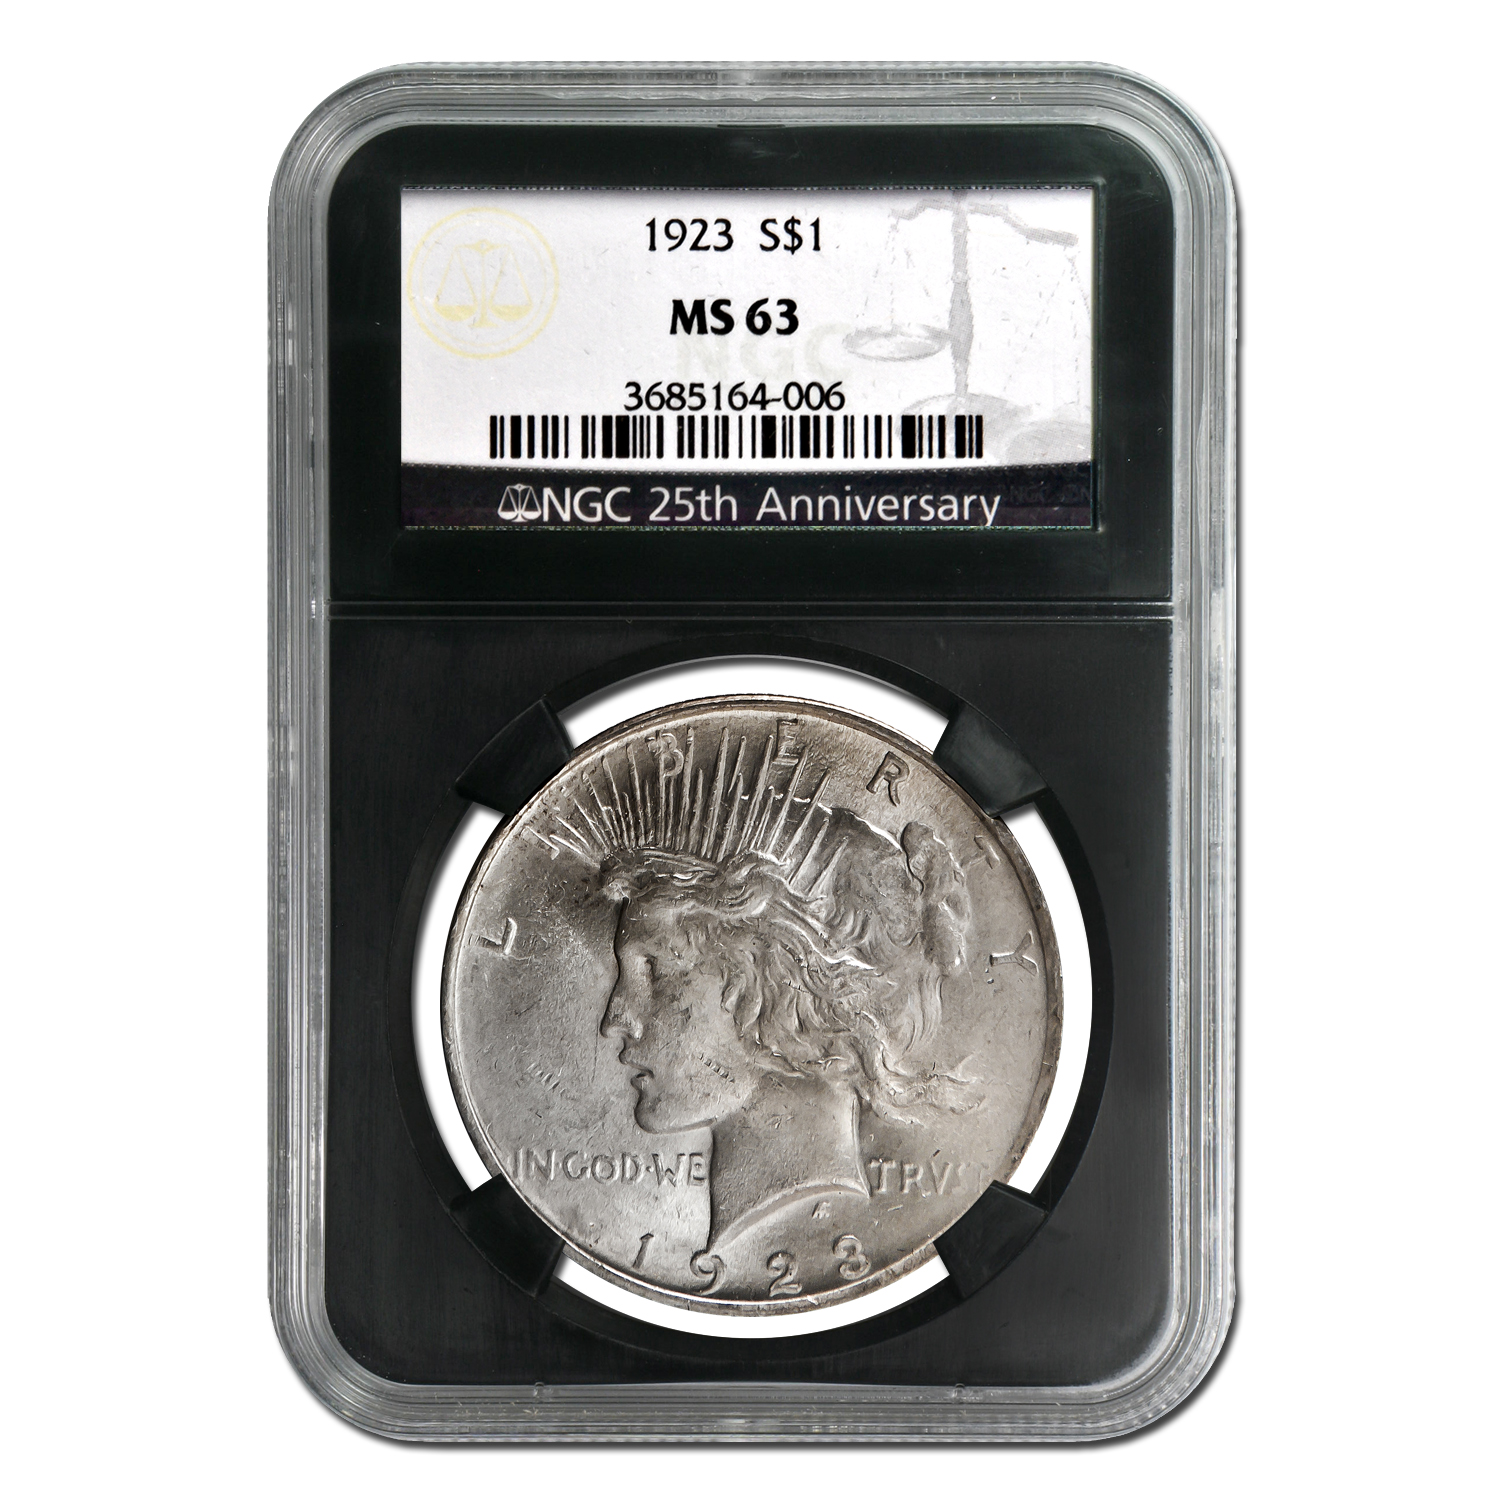 1922-1925 Peace Dollar Set MS-63 NGC (4 Coin 25th Anniversary)